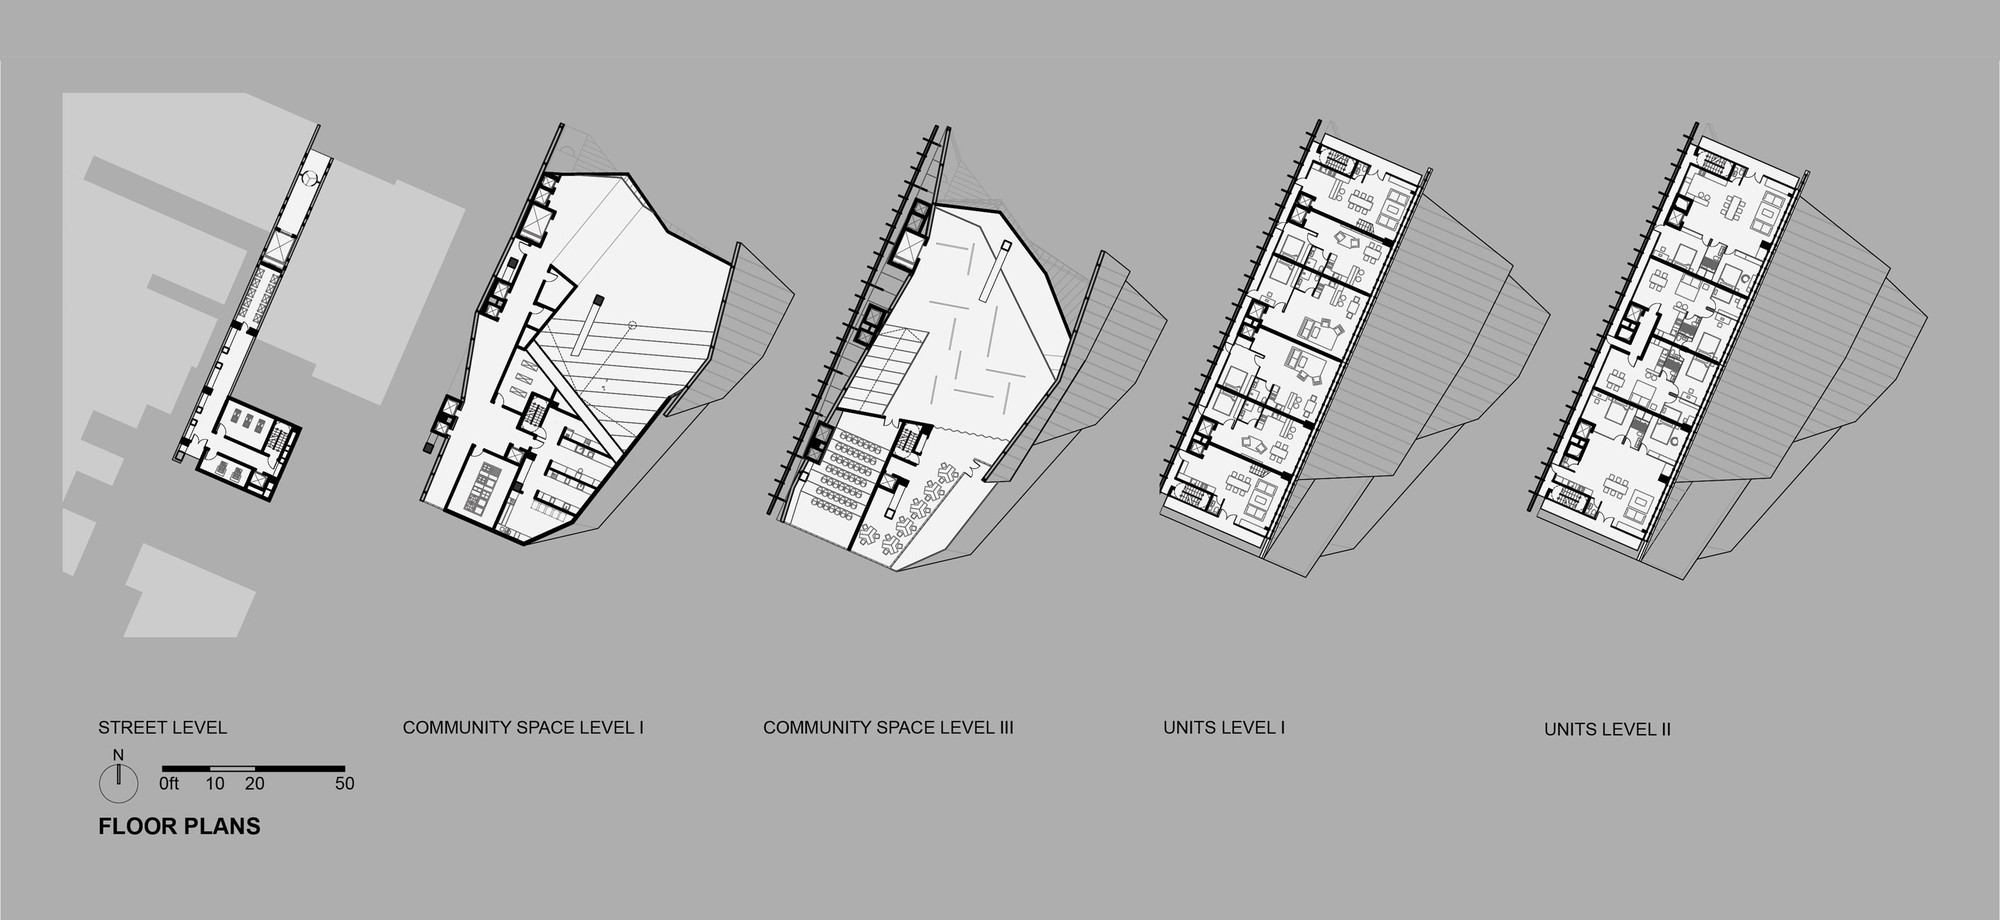 Typical Floor Plan Gallery Of Proposal For New York Skyscraper Cantilevers